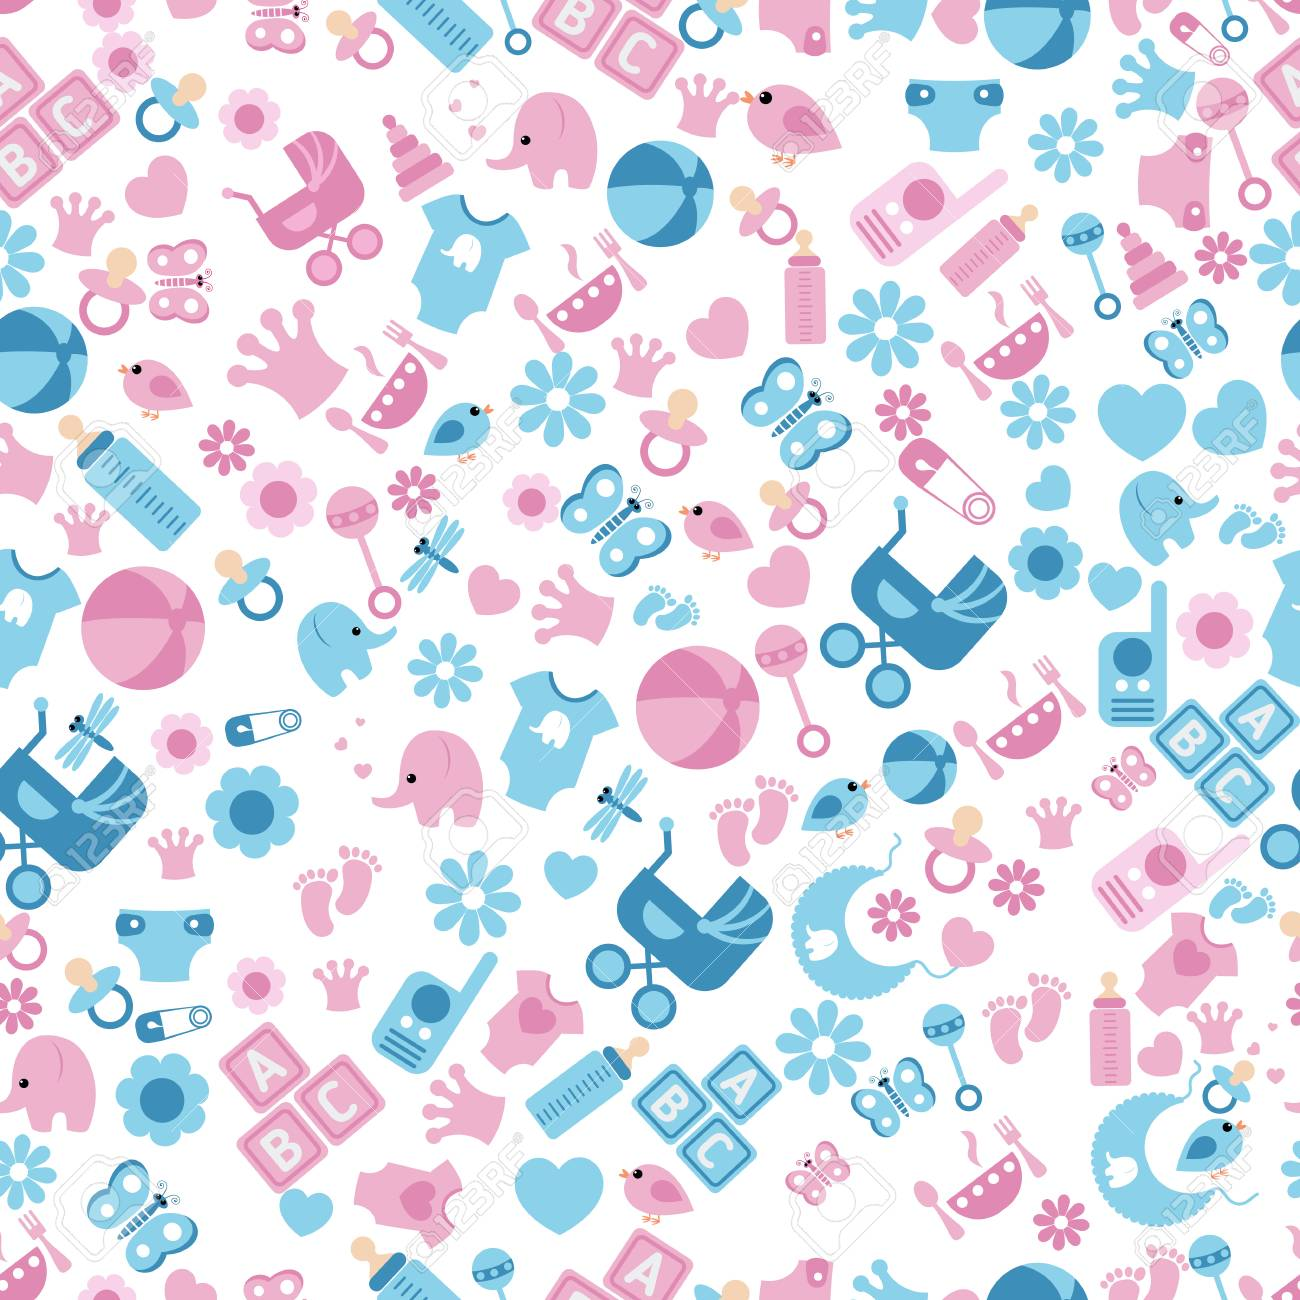 Seamless Baby Background for Baby Shower. Vector seamless baby and pregnancy pattern. - 54644742